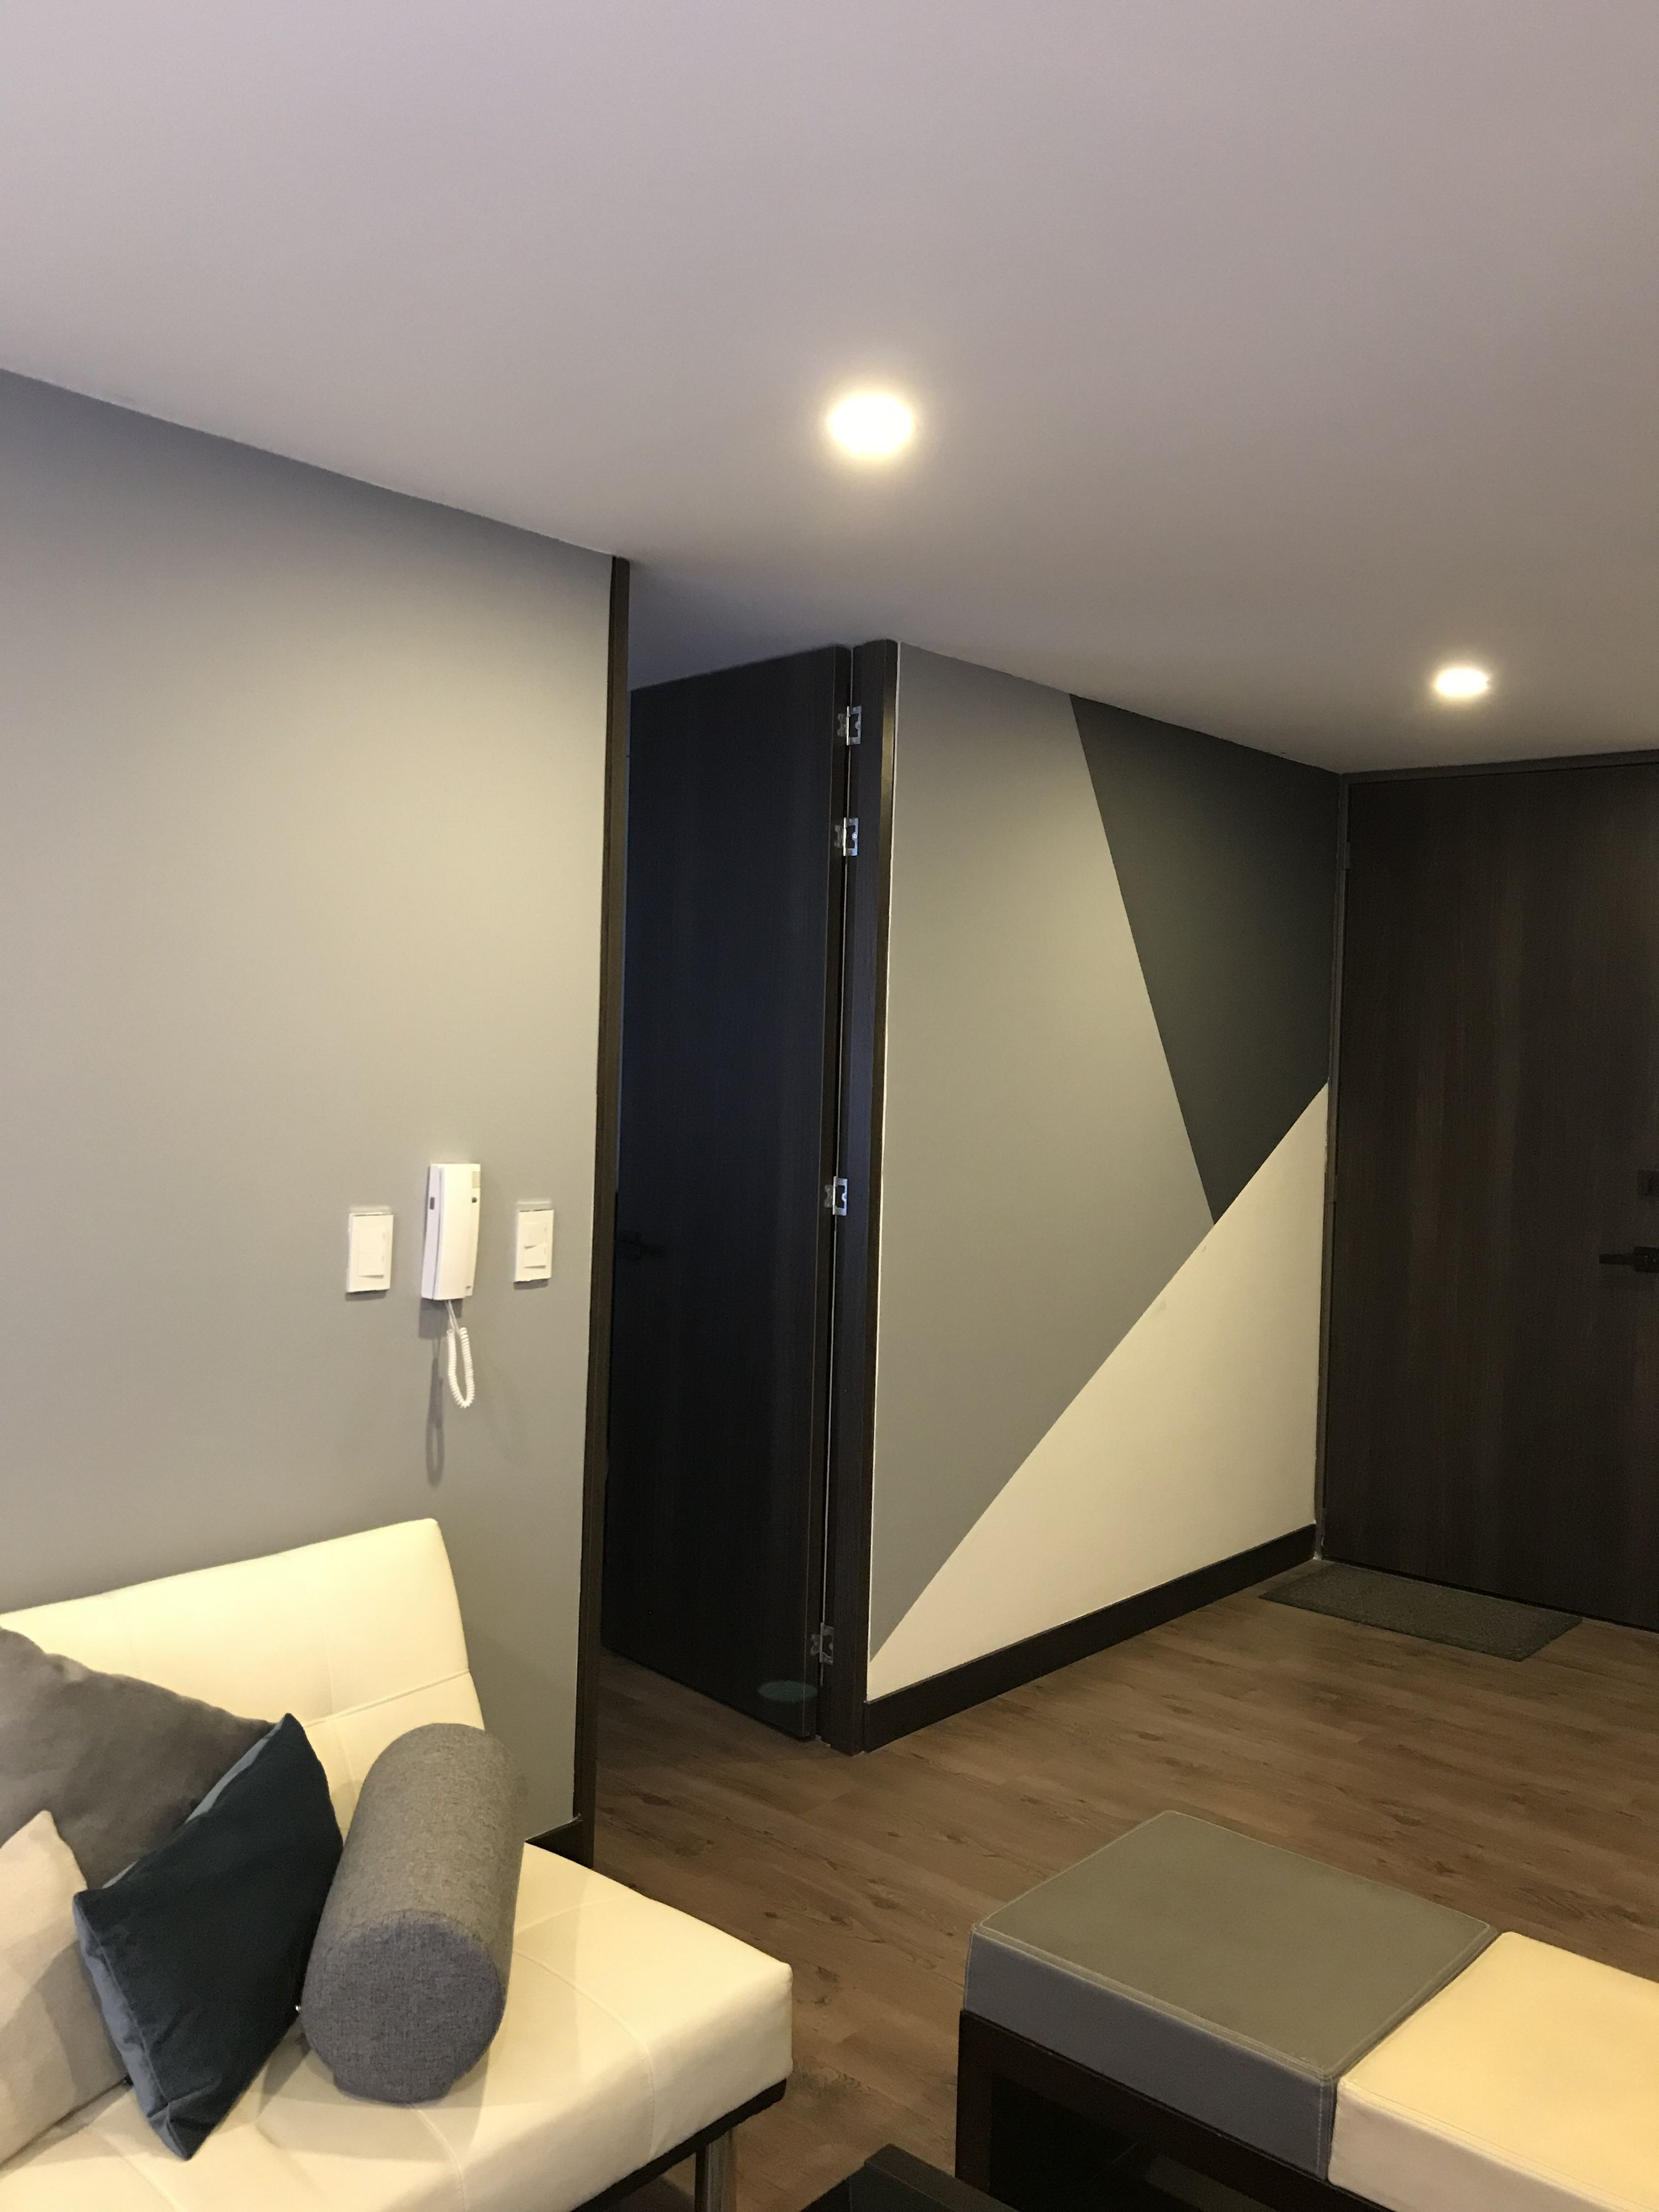 The Gray Scale Color Pallet In This Room Is Very Harmonious As Are The Harsh Angles And Sharp Edges Bedroom Wall Designs Bedroom Wall Paint Wall Paint Designs